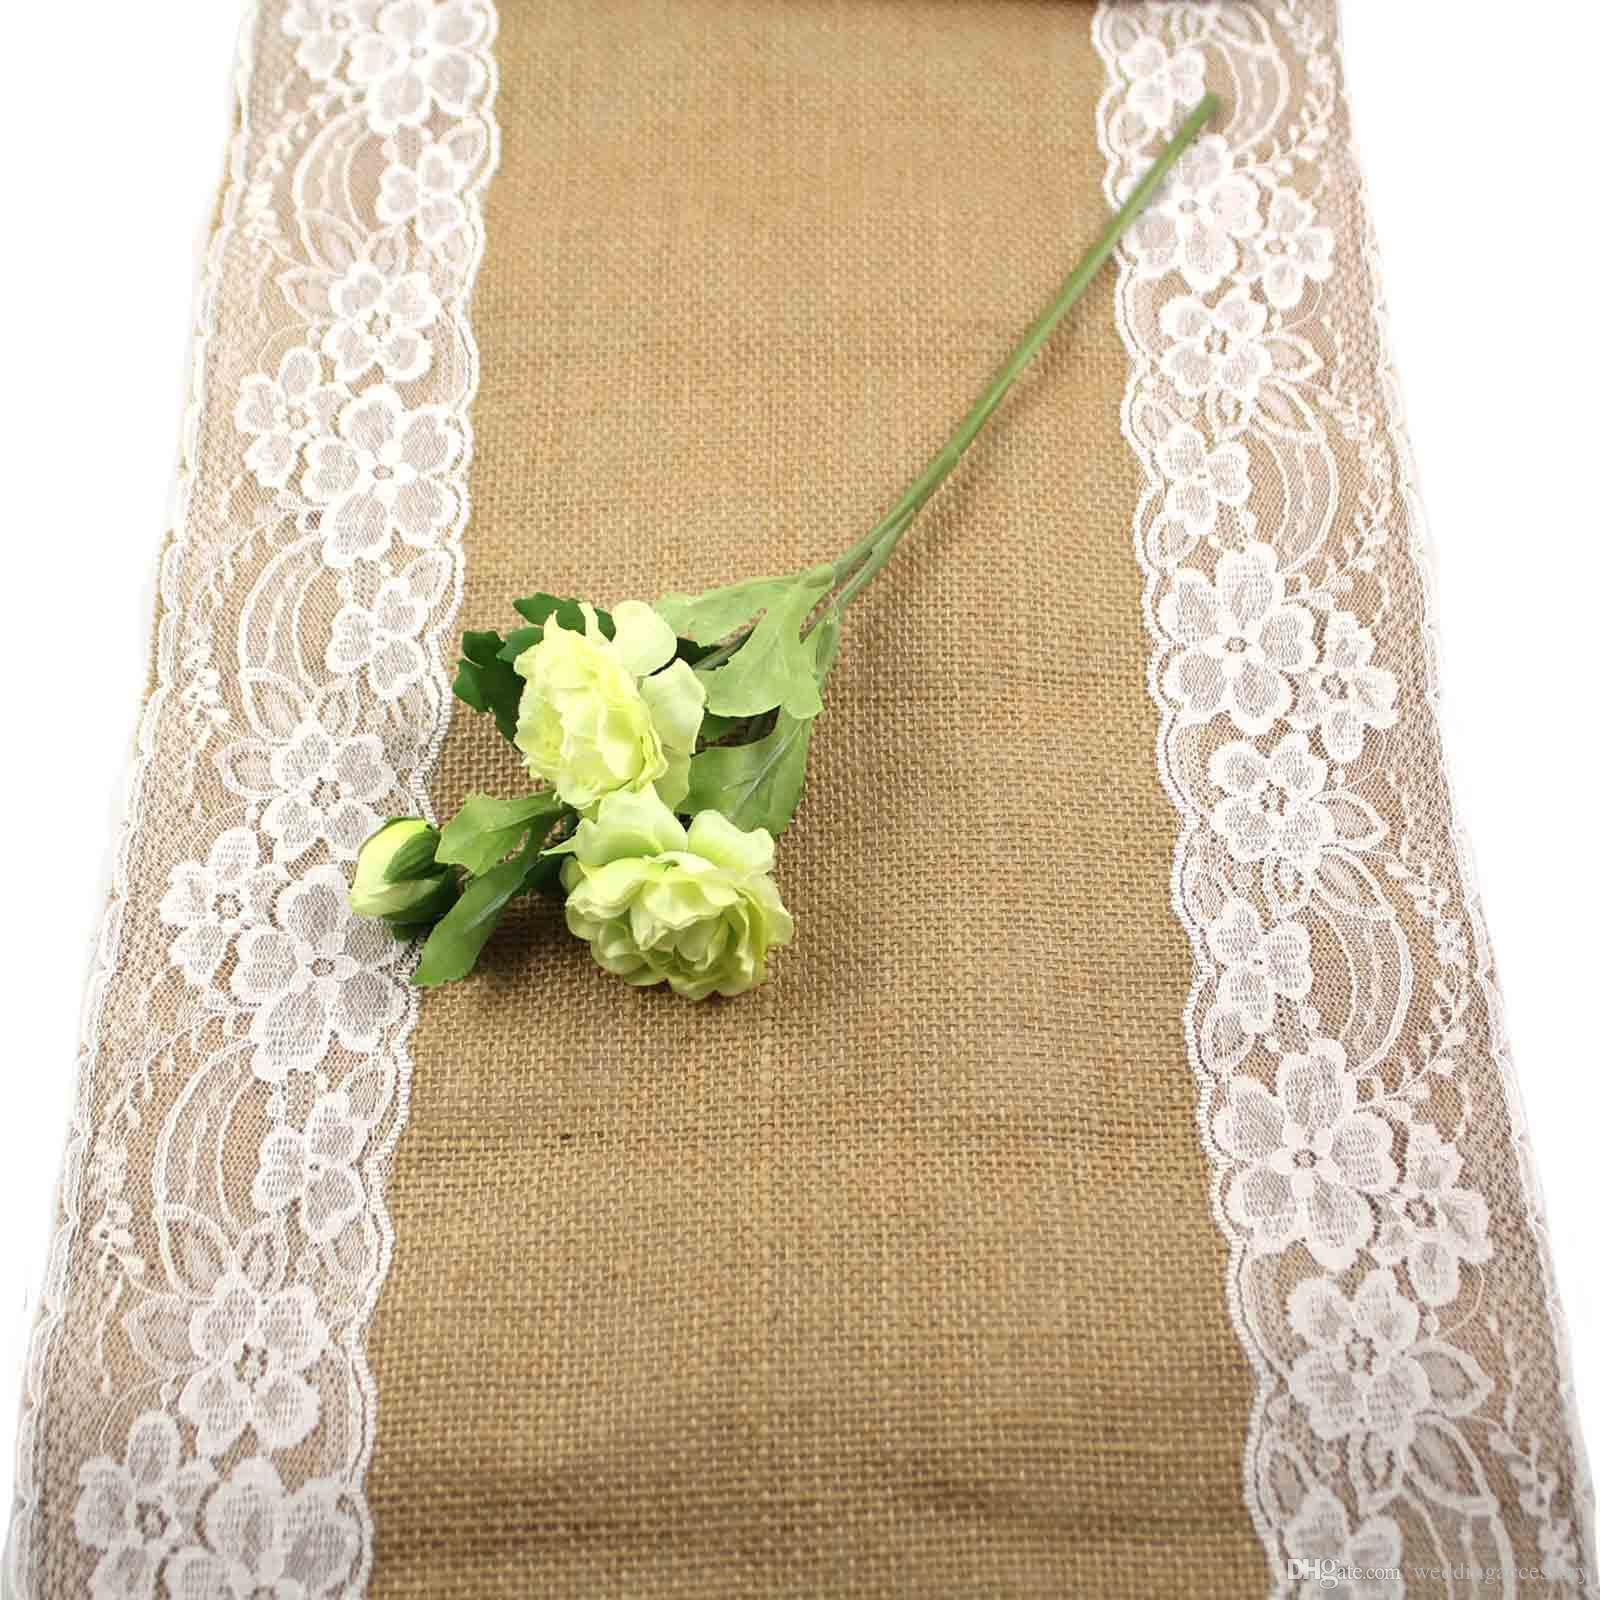 Free By DHL,30x275cm Vintage Burlap Lace Hessian Table Runner ...